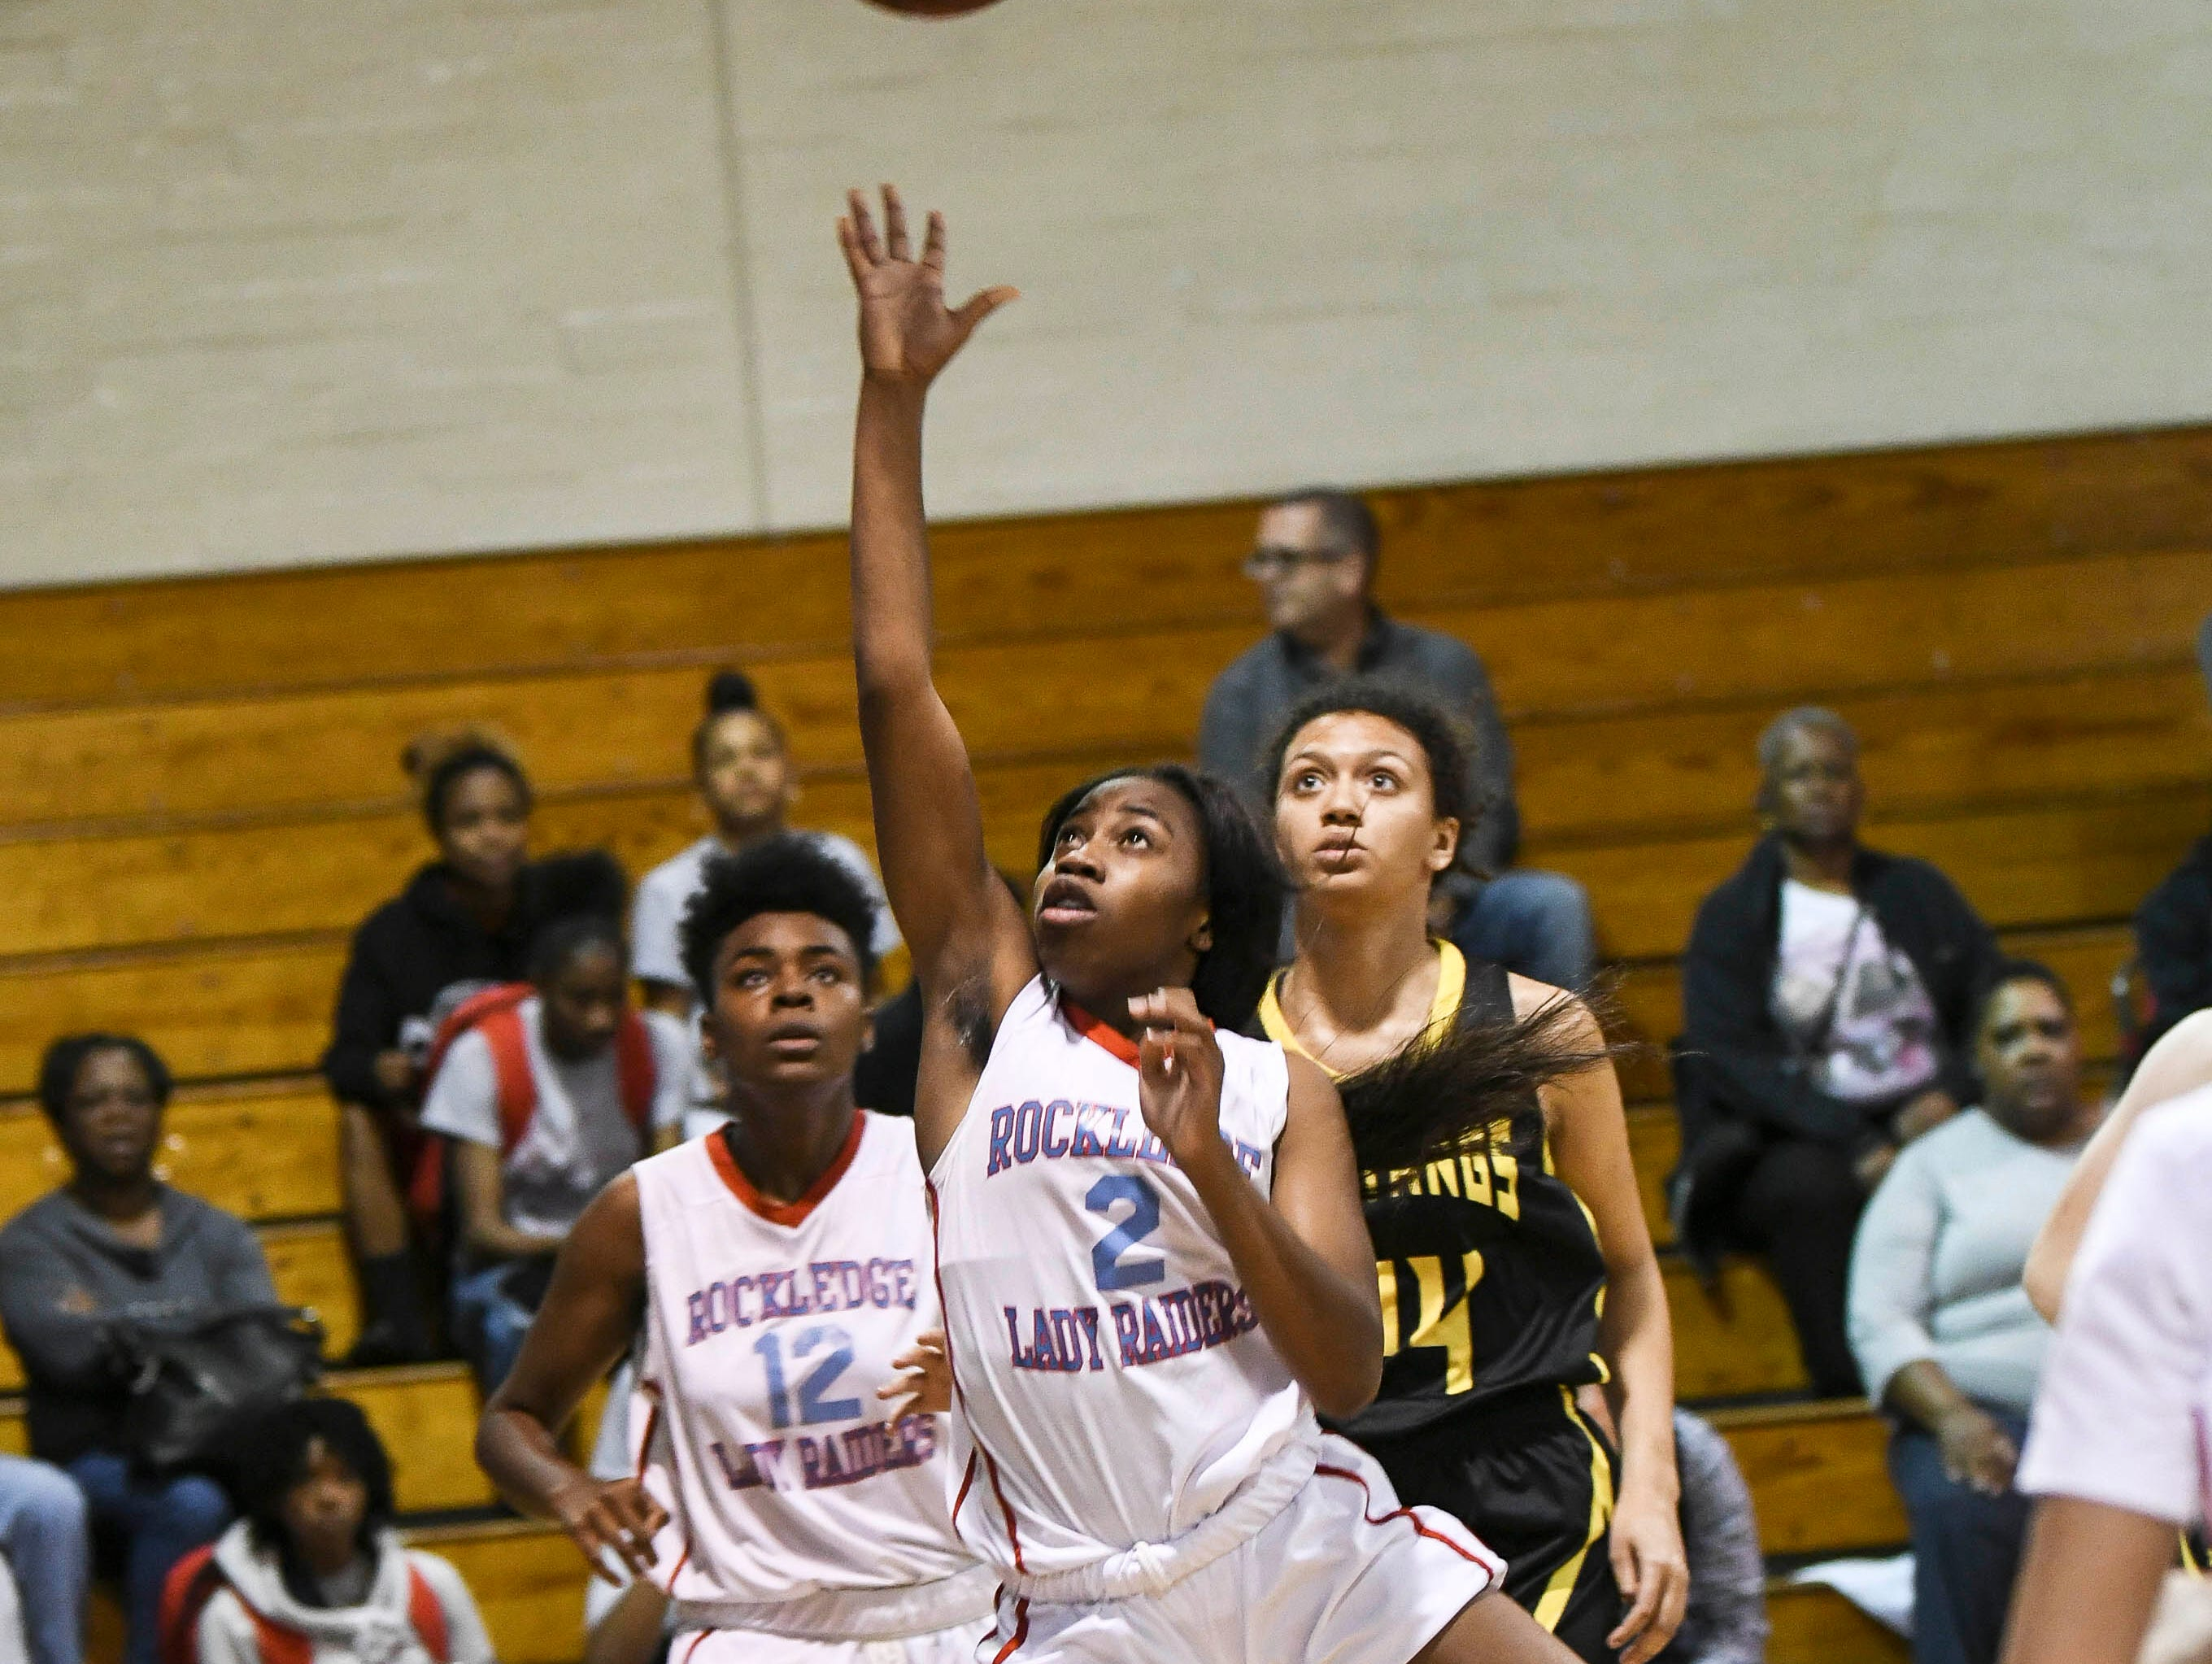 Shakara Robertson of Rockledge takes a shot during Thursday's District 14-6A basketball tournament semifinal at Rockledge High School.